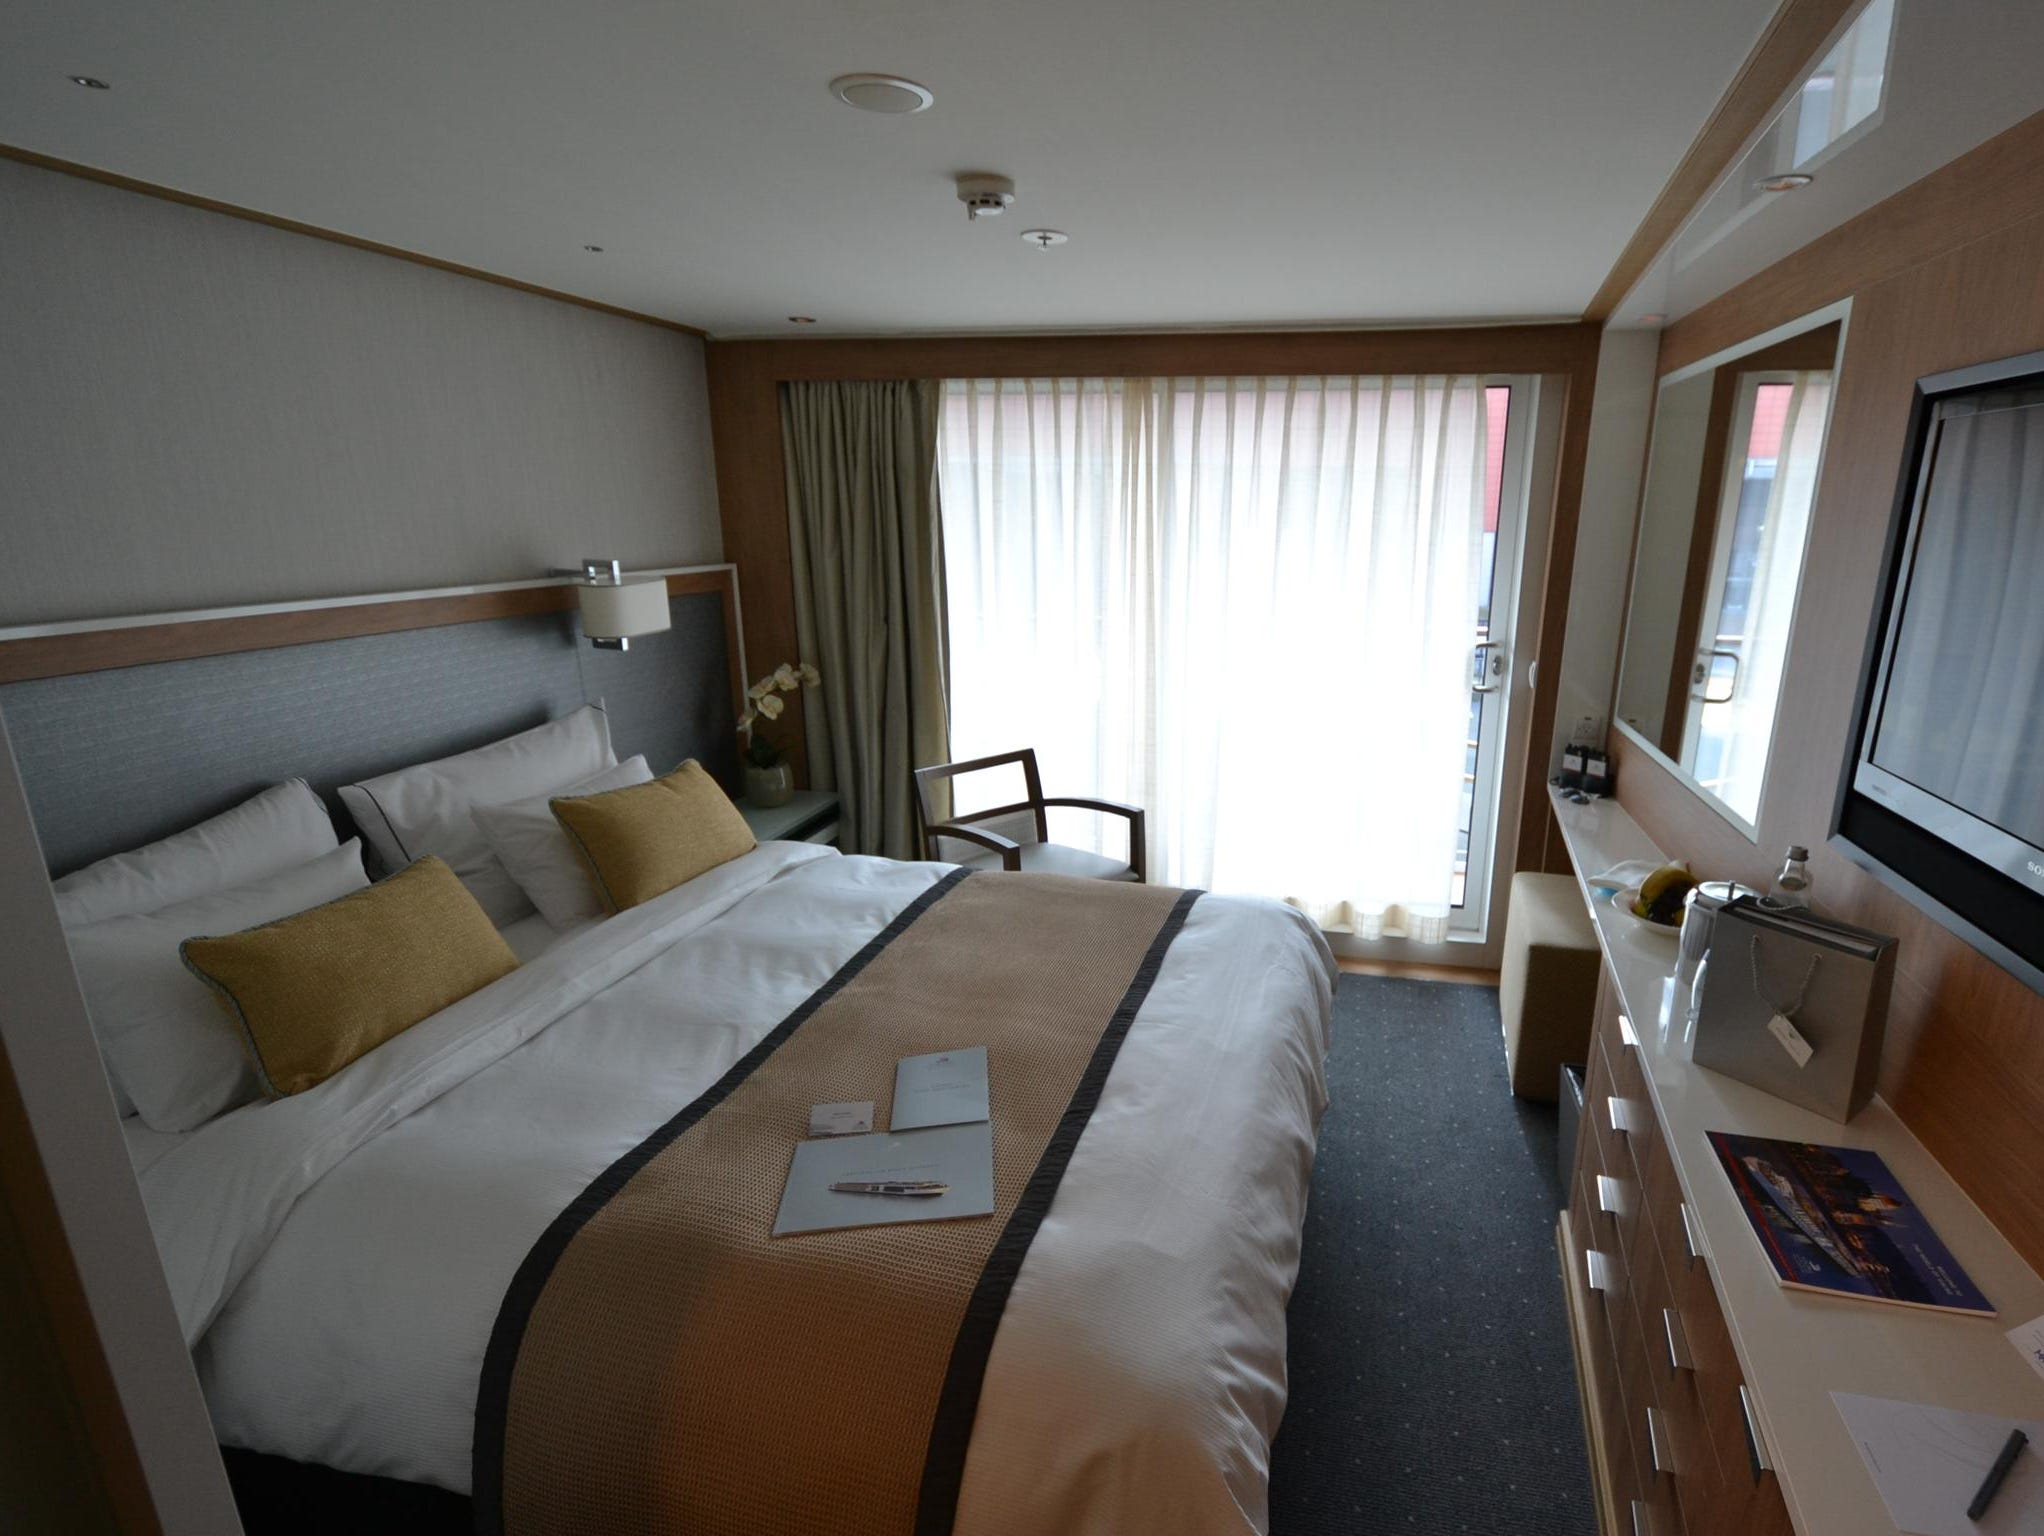 In addition to suites, the Viking Odin has 39 cabins that come with balconies, an unusual feature on river ships.